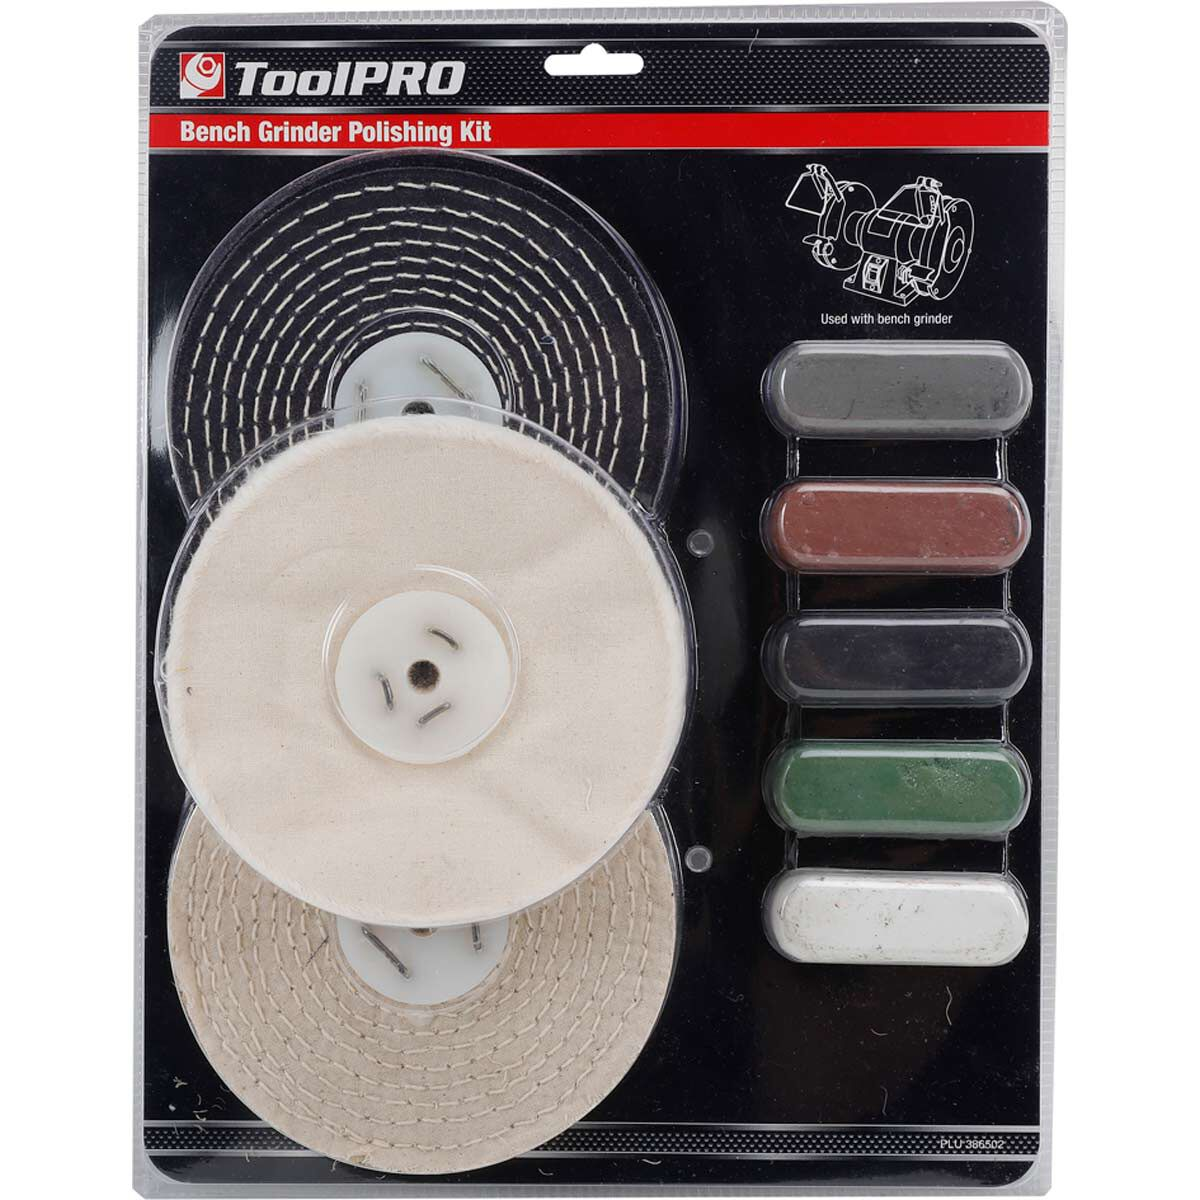 Strange Details About Toolpro Bench Grinder Polishing Kit 8 Piece Bralicious Painted Fabric Chair Ideas Braliciousco